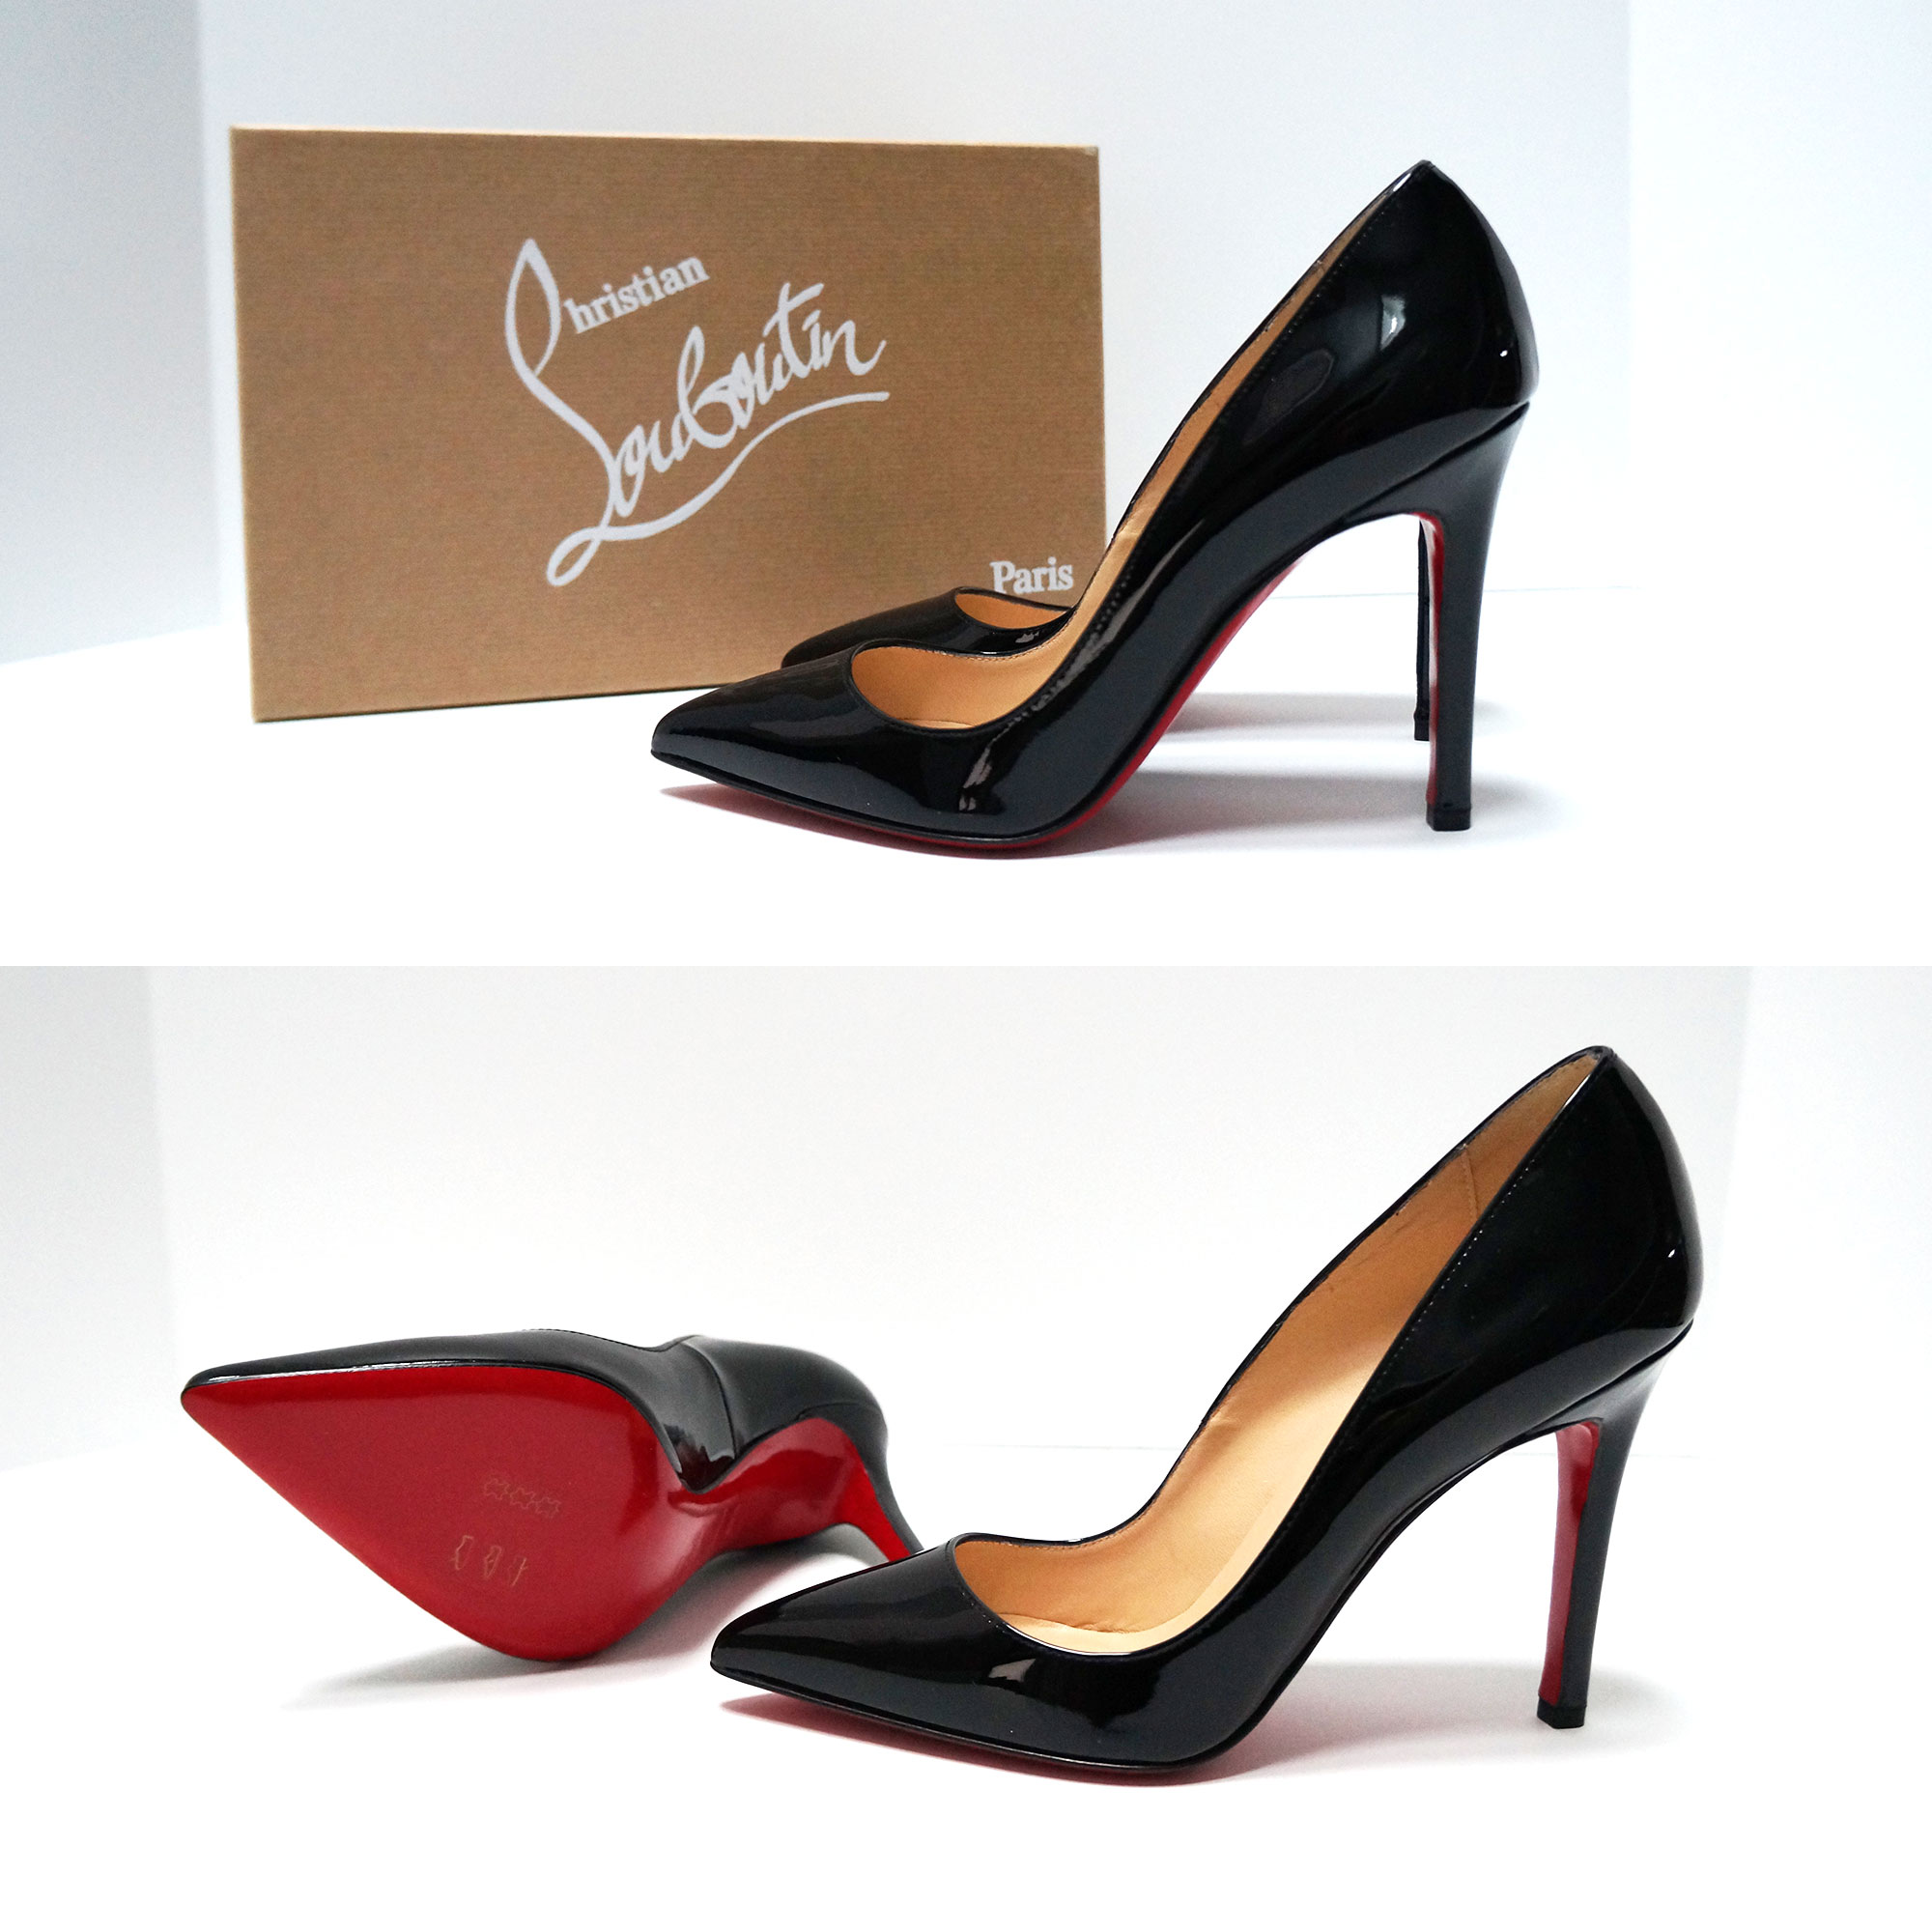 competitive price 9fb43 b2c13 Christian Louboutin Pigalle 100 Patent Leather Pumps Heels Black Shoes 36.5